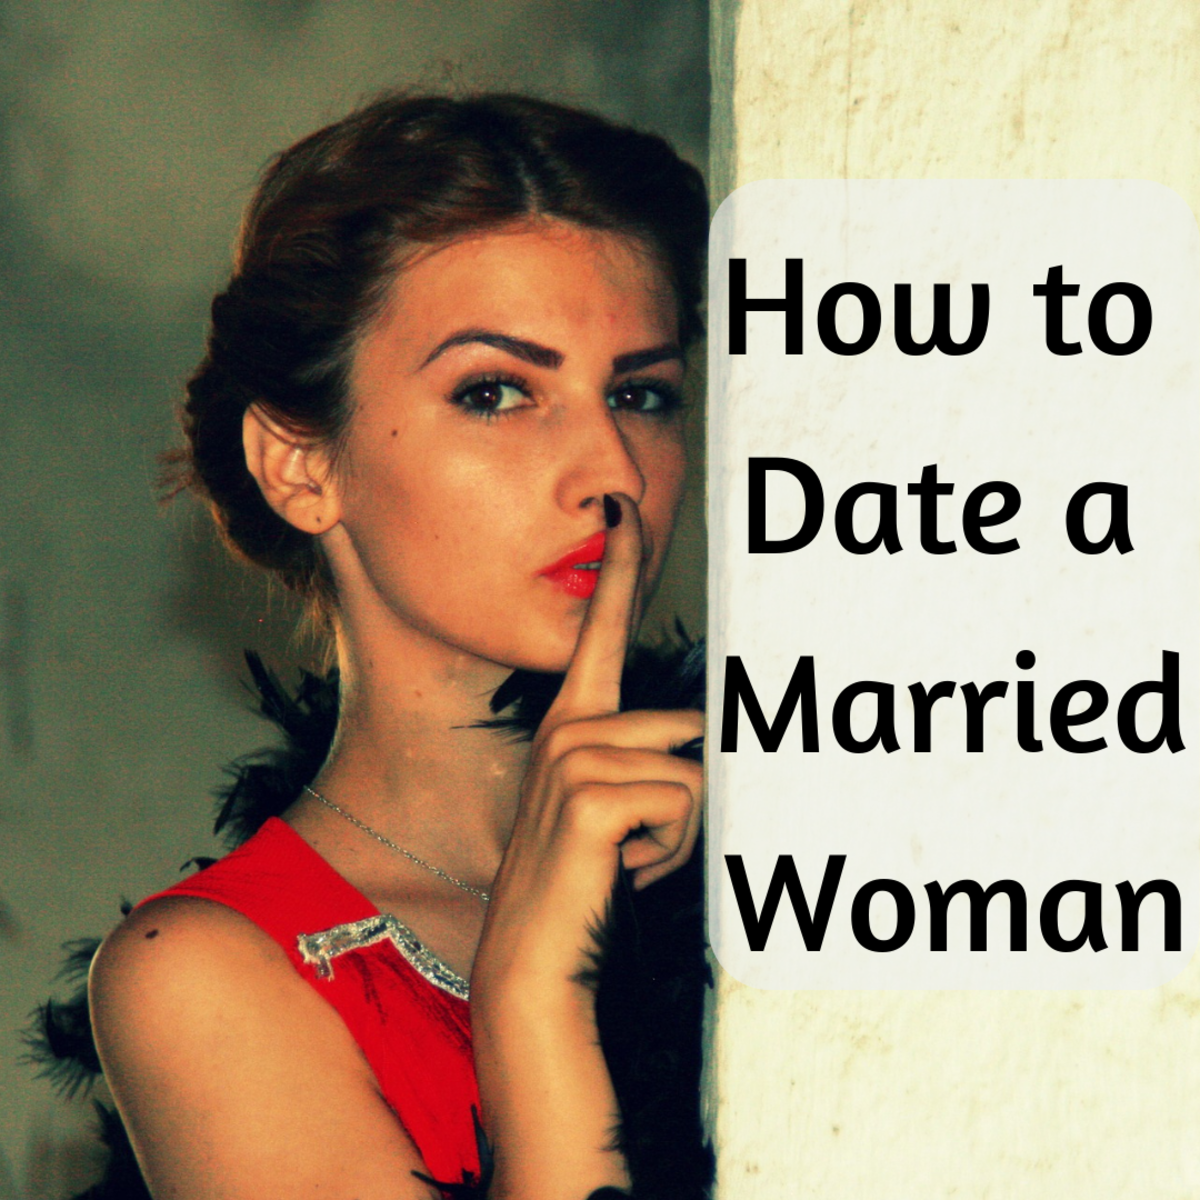 Dating a married woman is not as hard as it may seem.